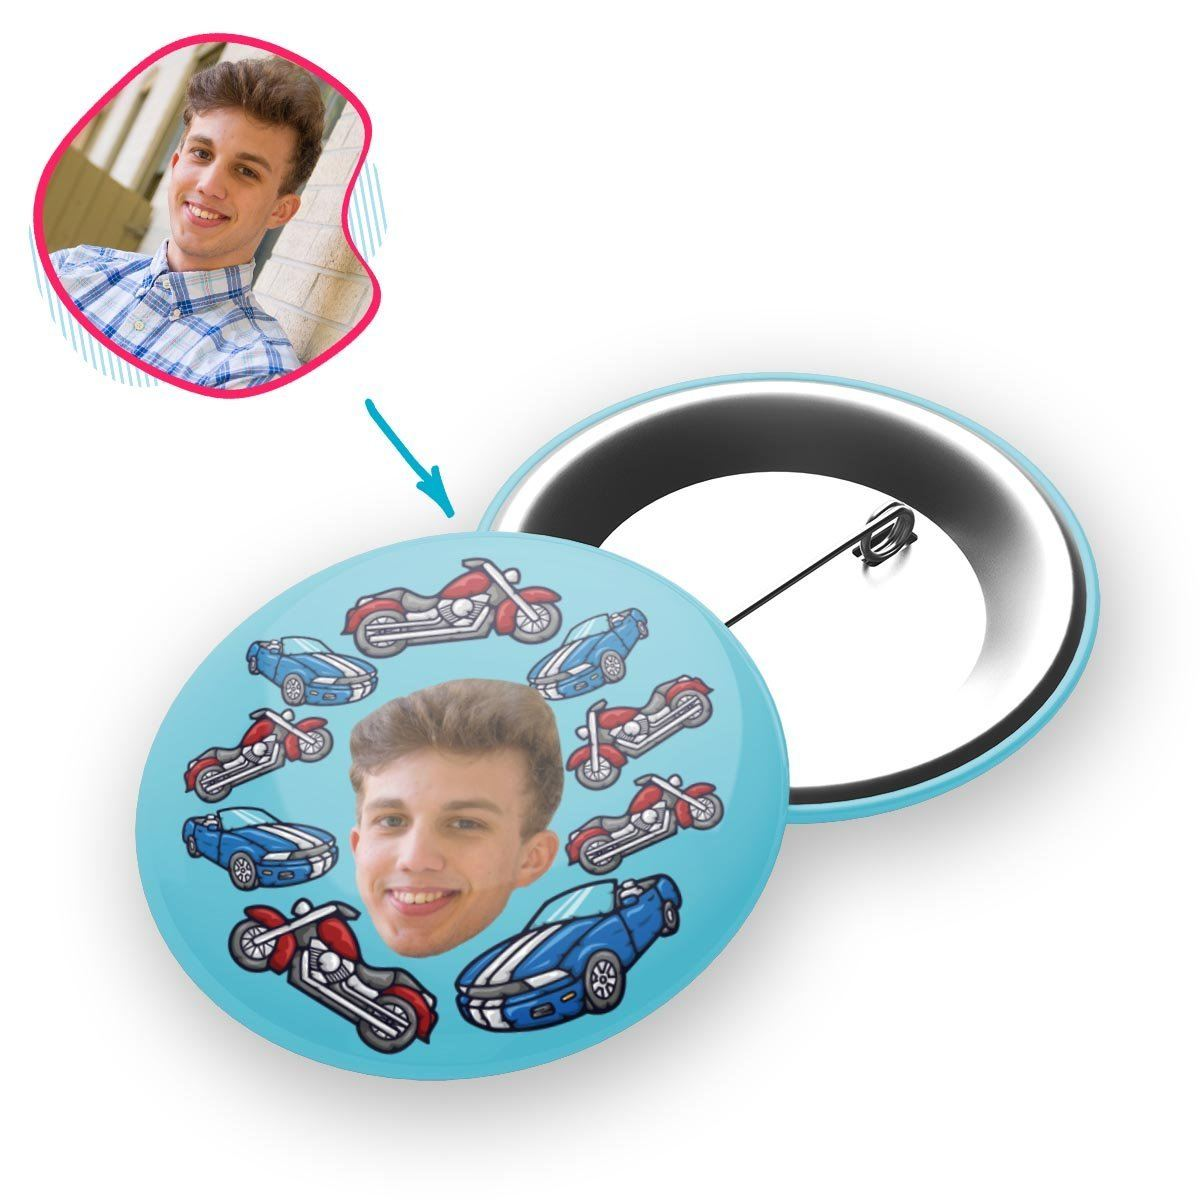 Blue Cars & Motorbikes personalized pin with photo of face printed on it